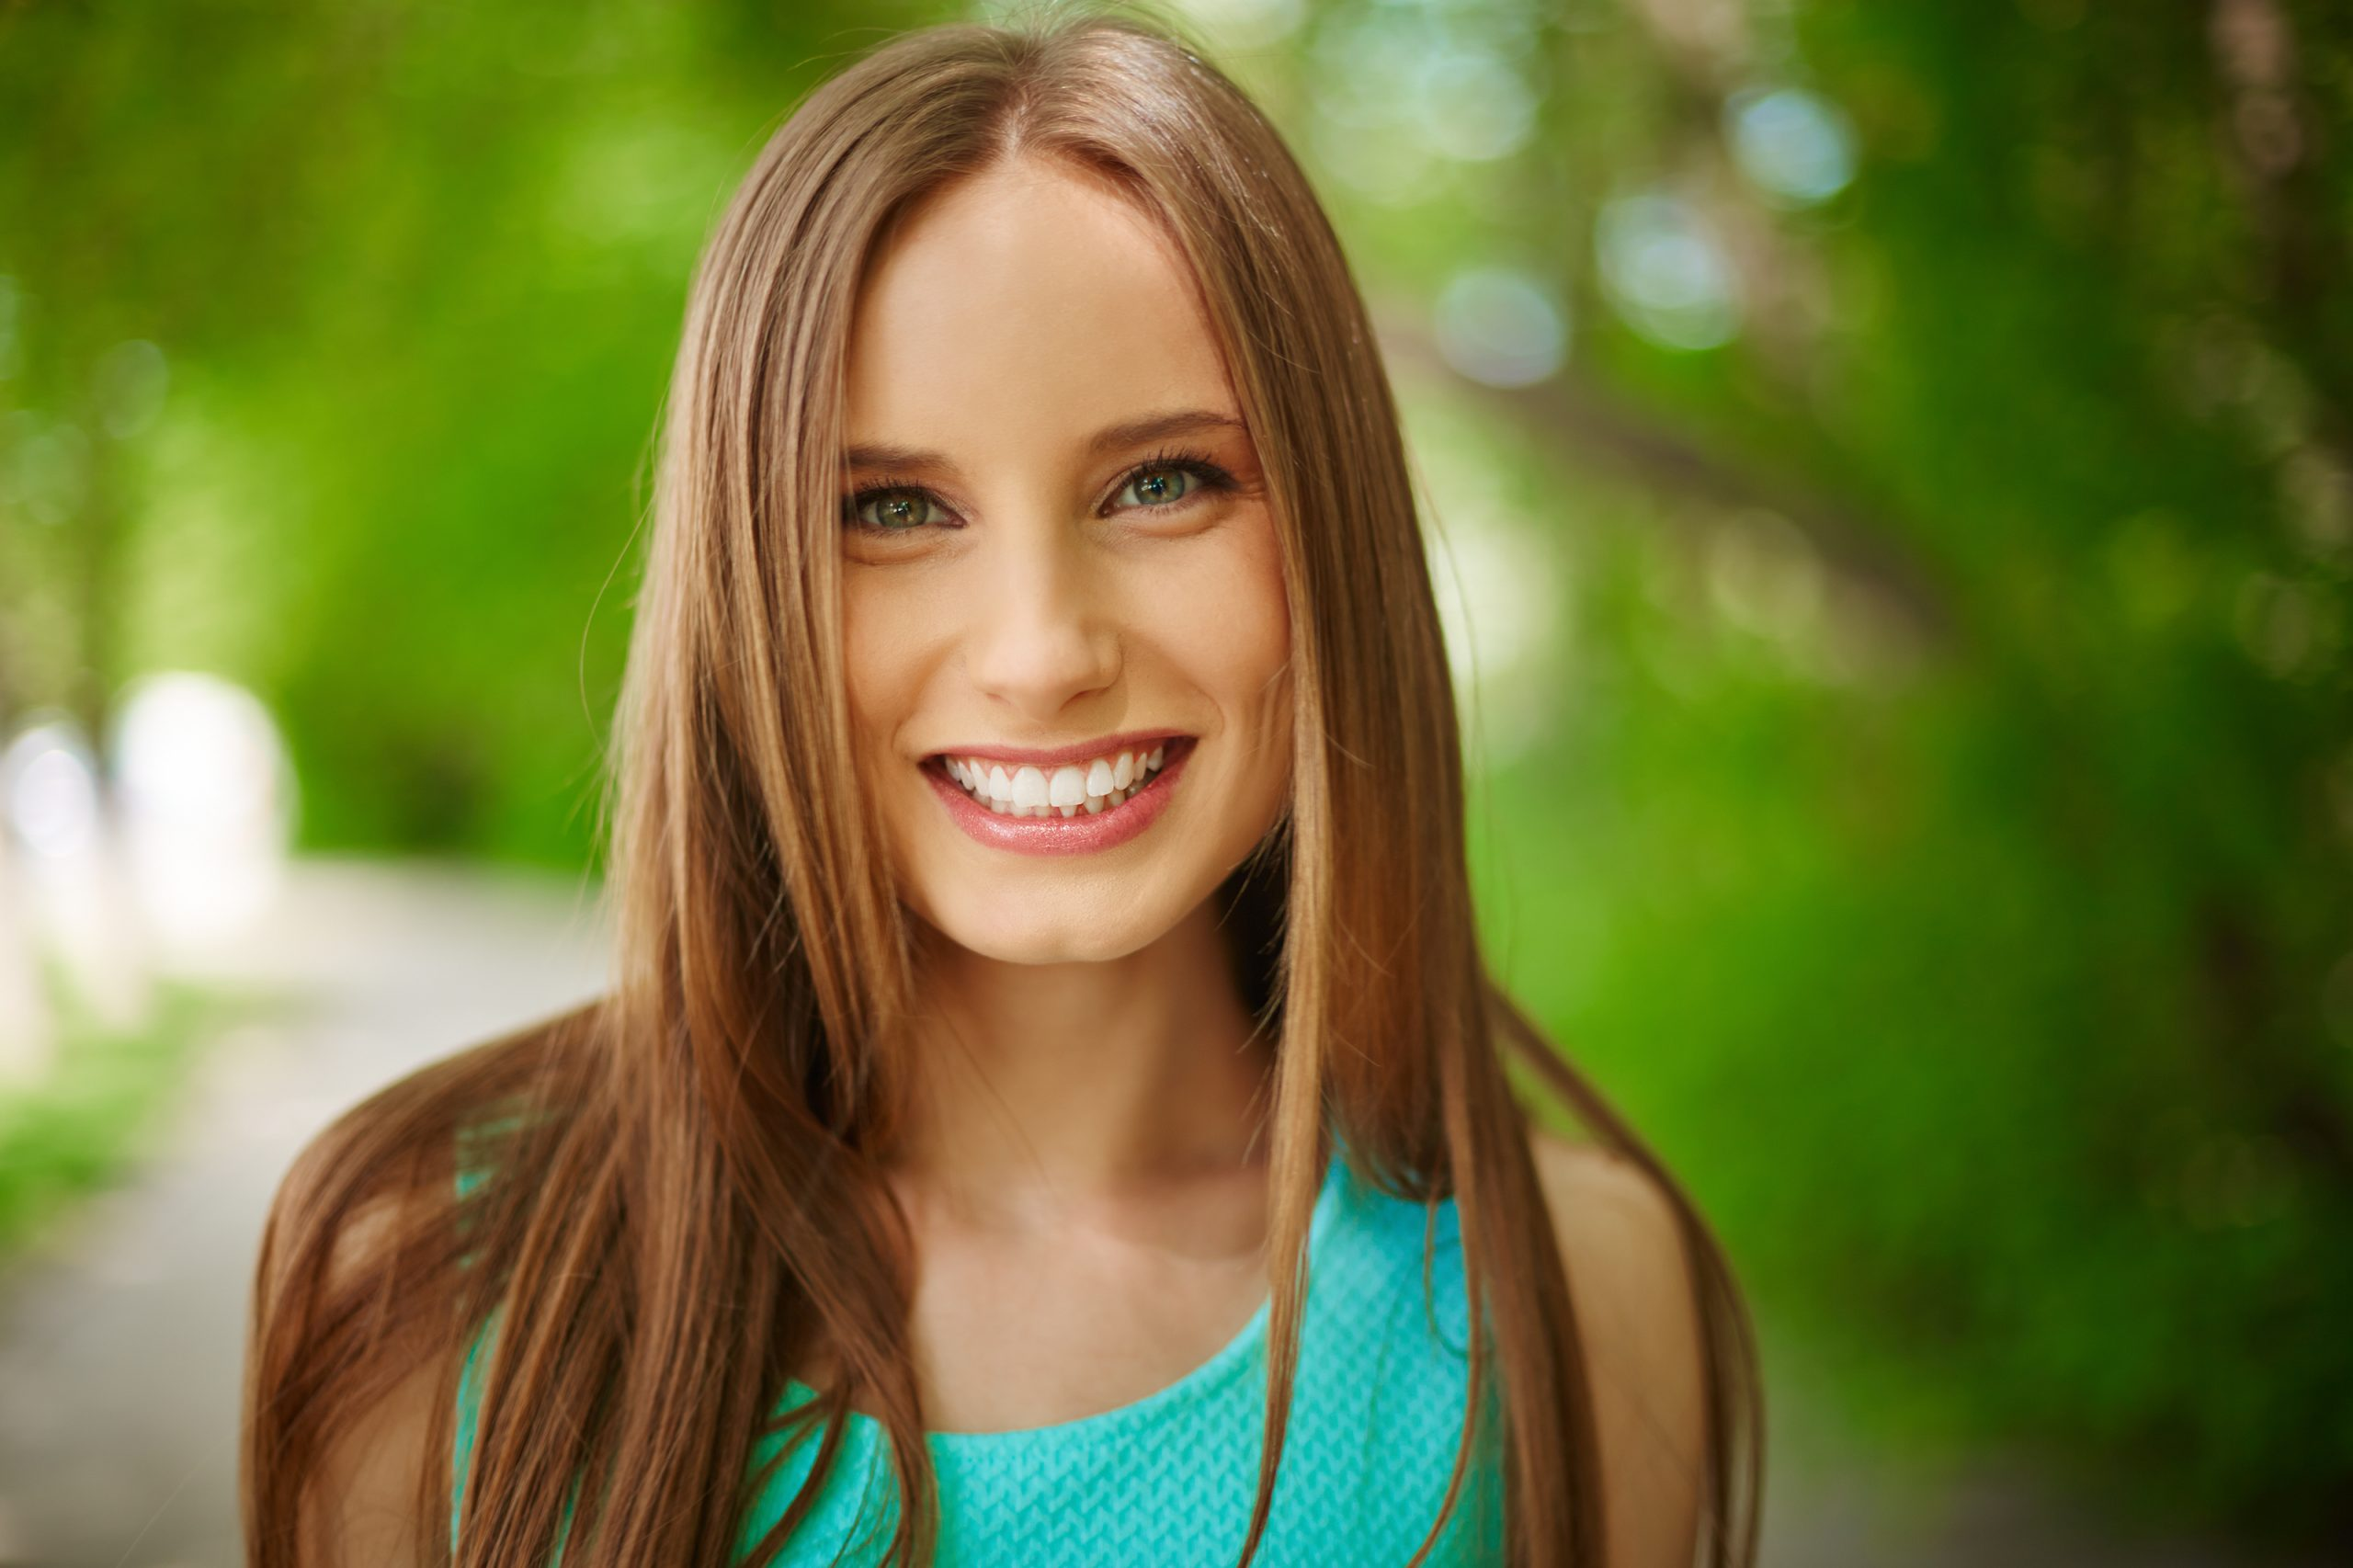 Young Eastern European smiling girl